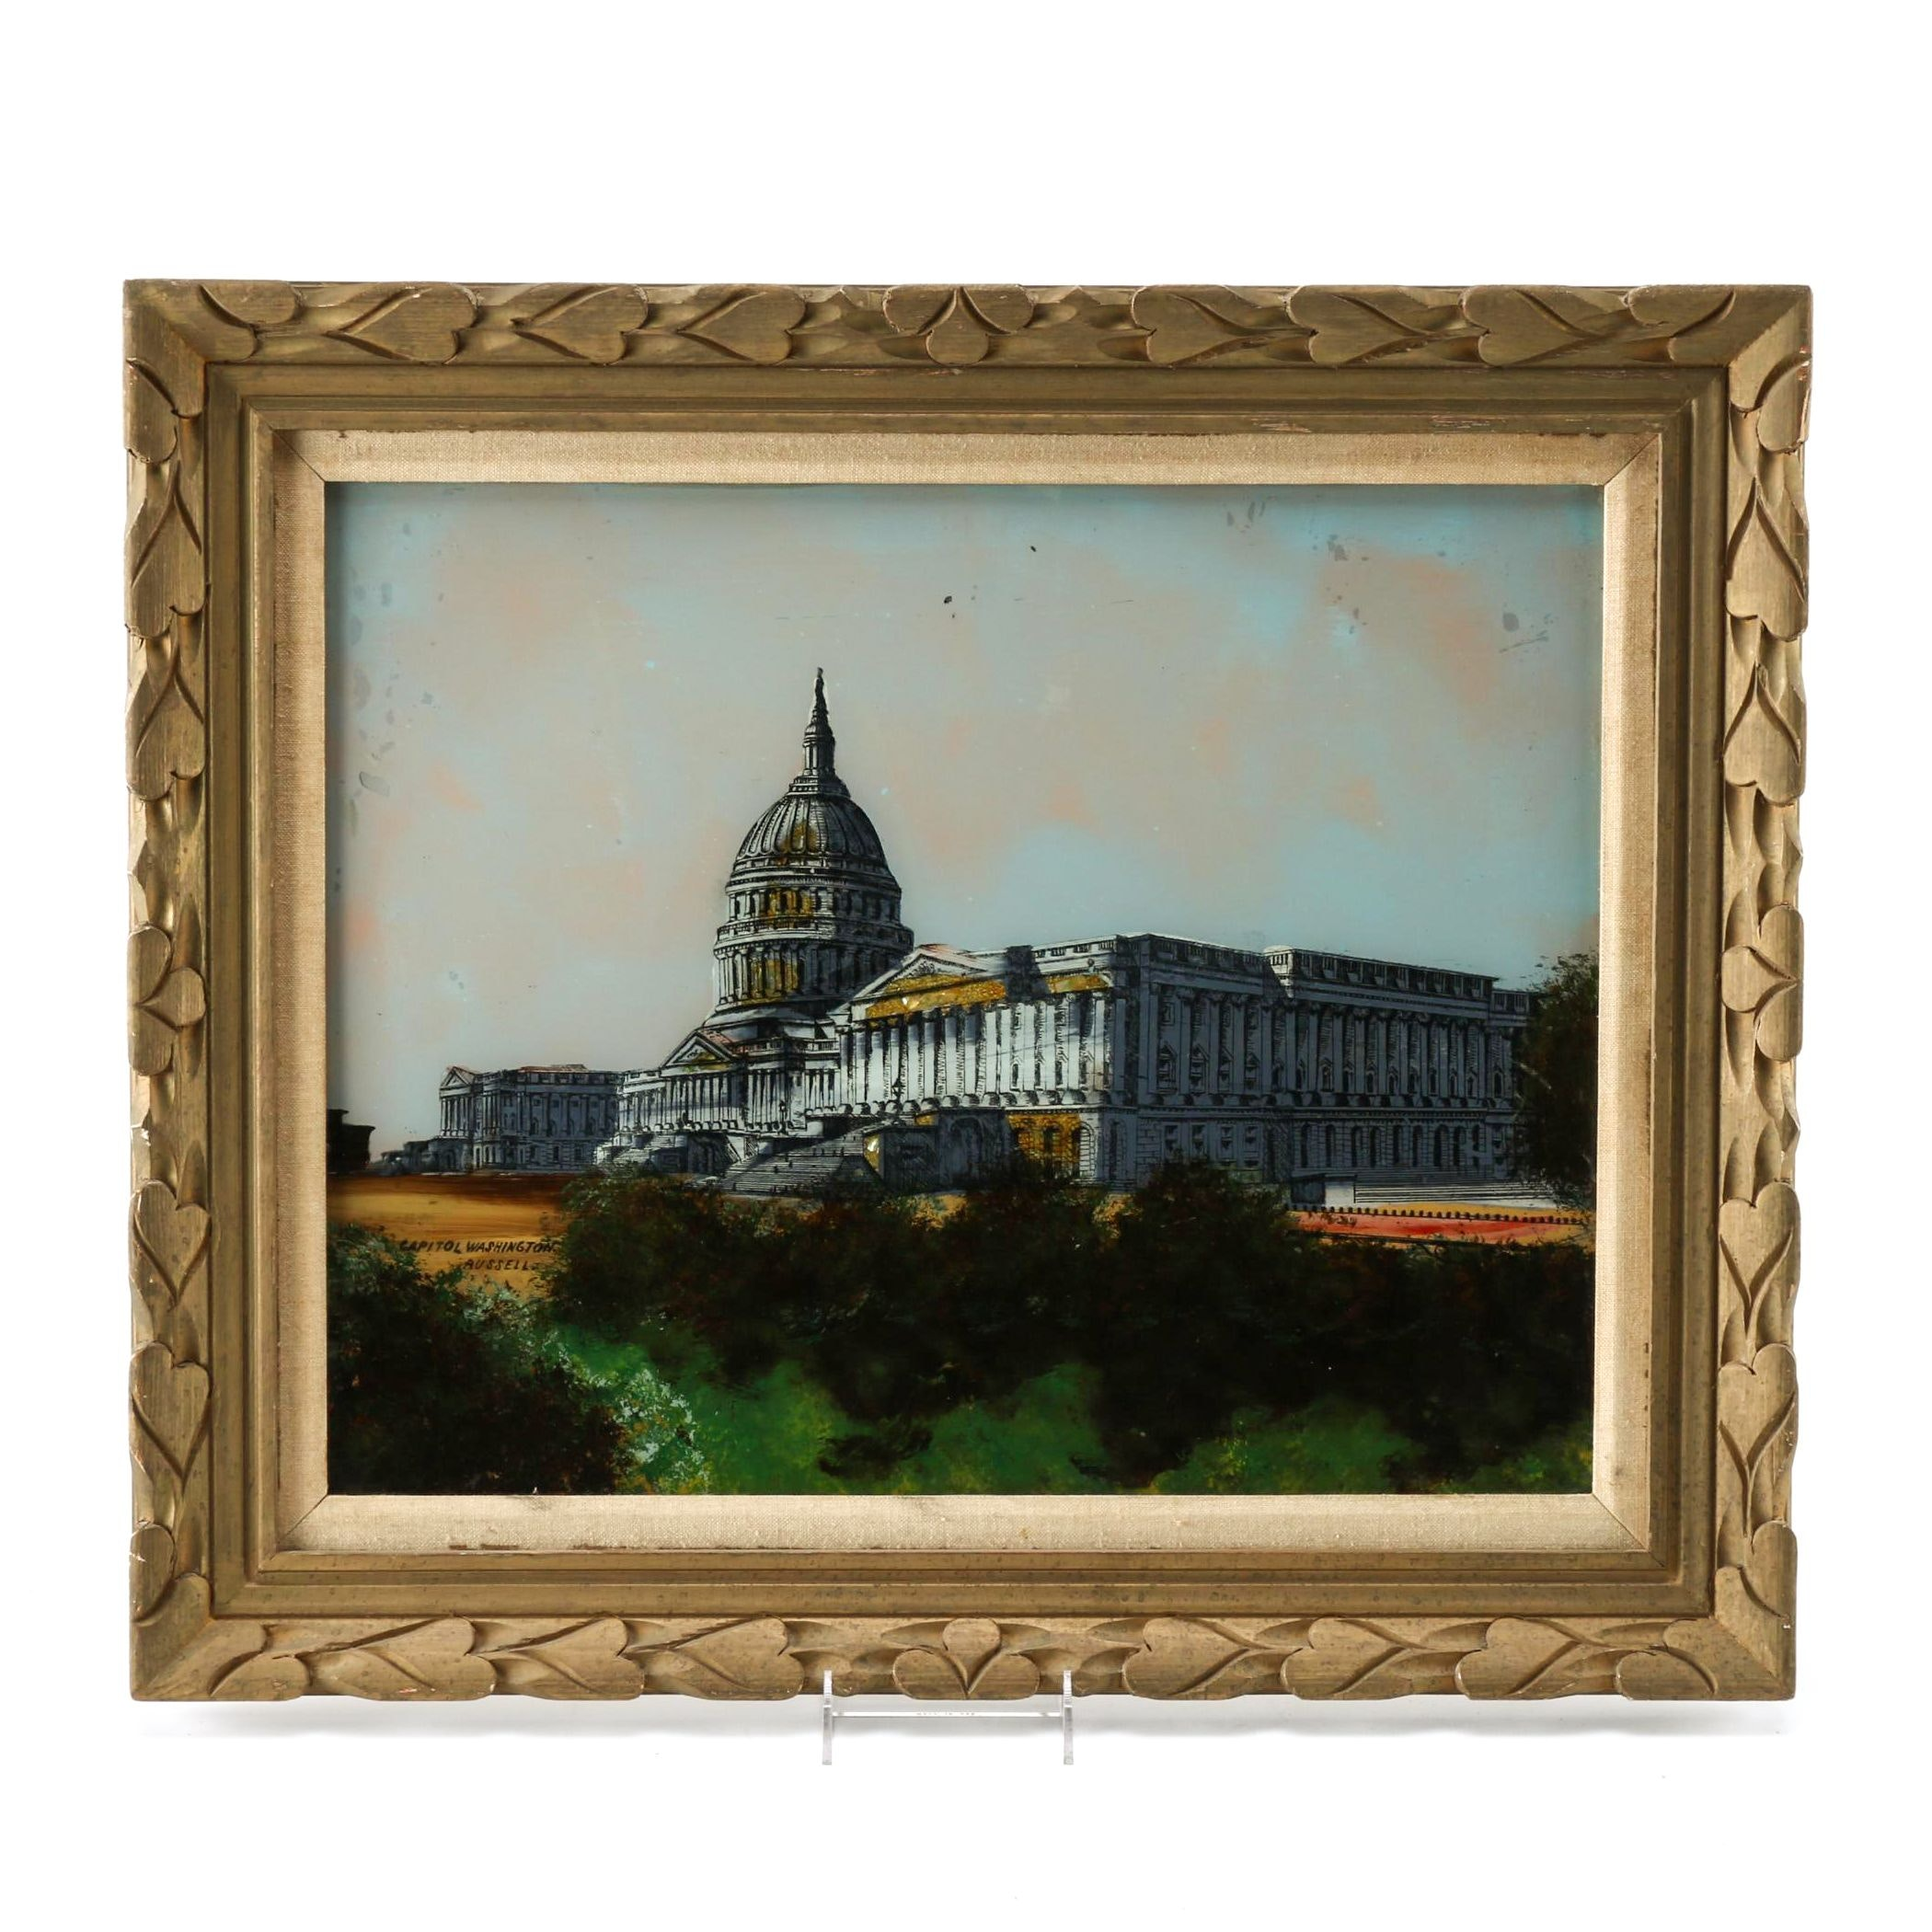 Mixed Media Painting on Glass of the Capitol Building